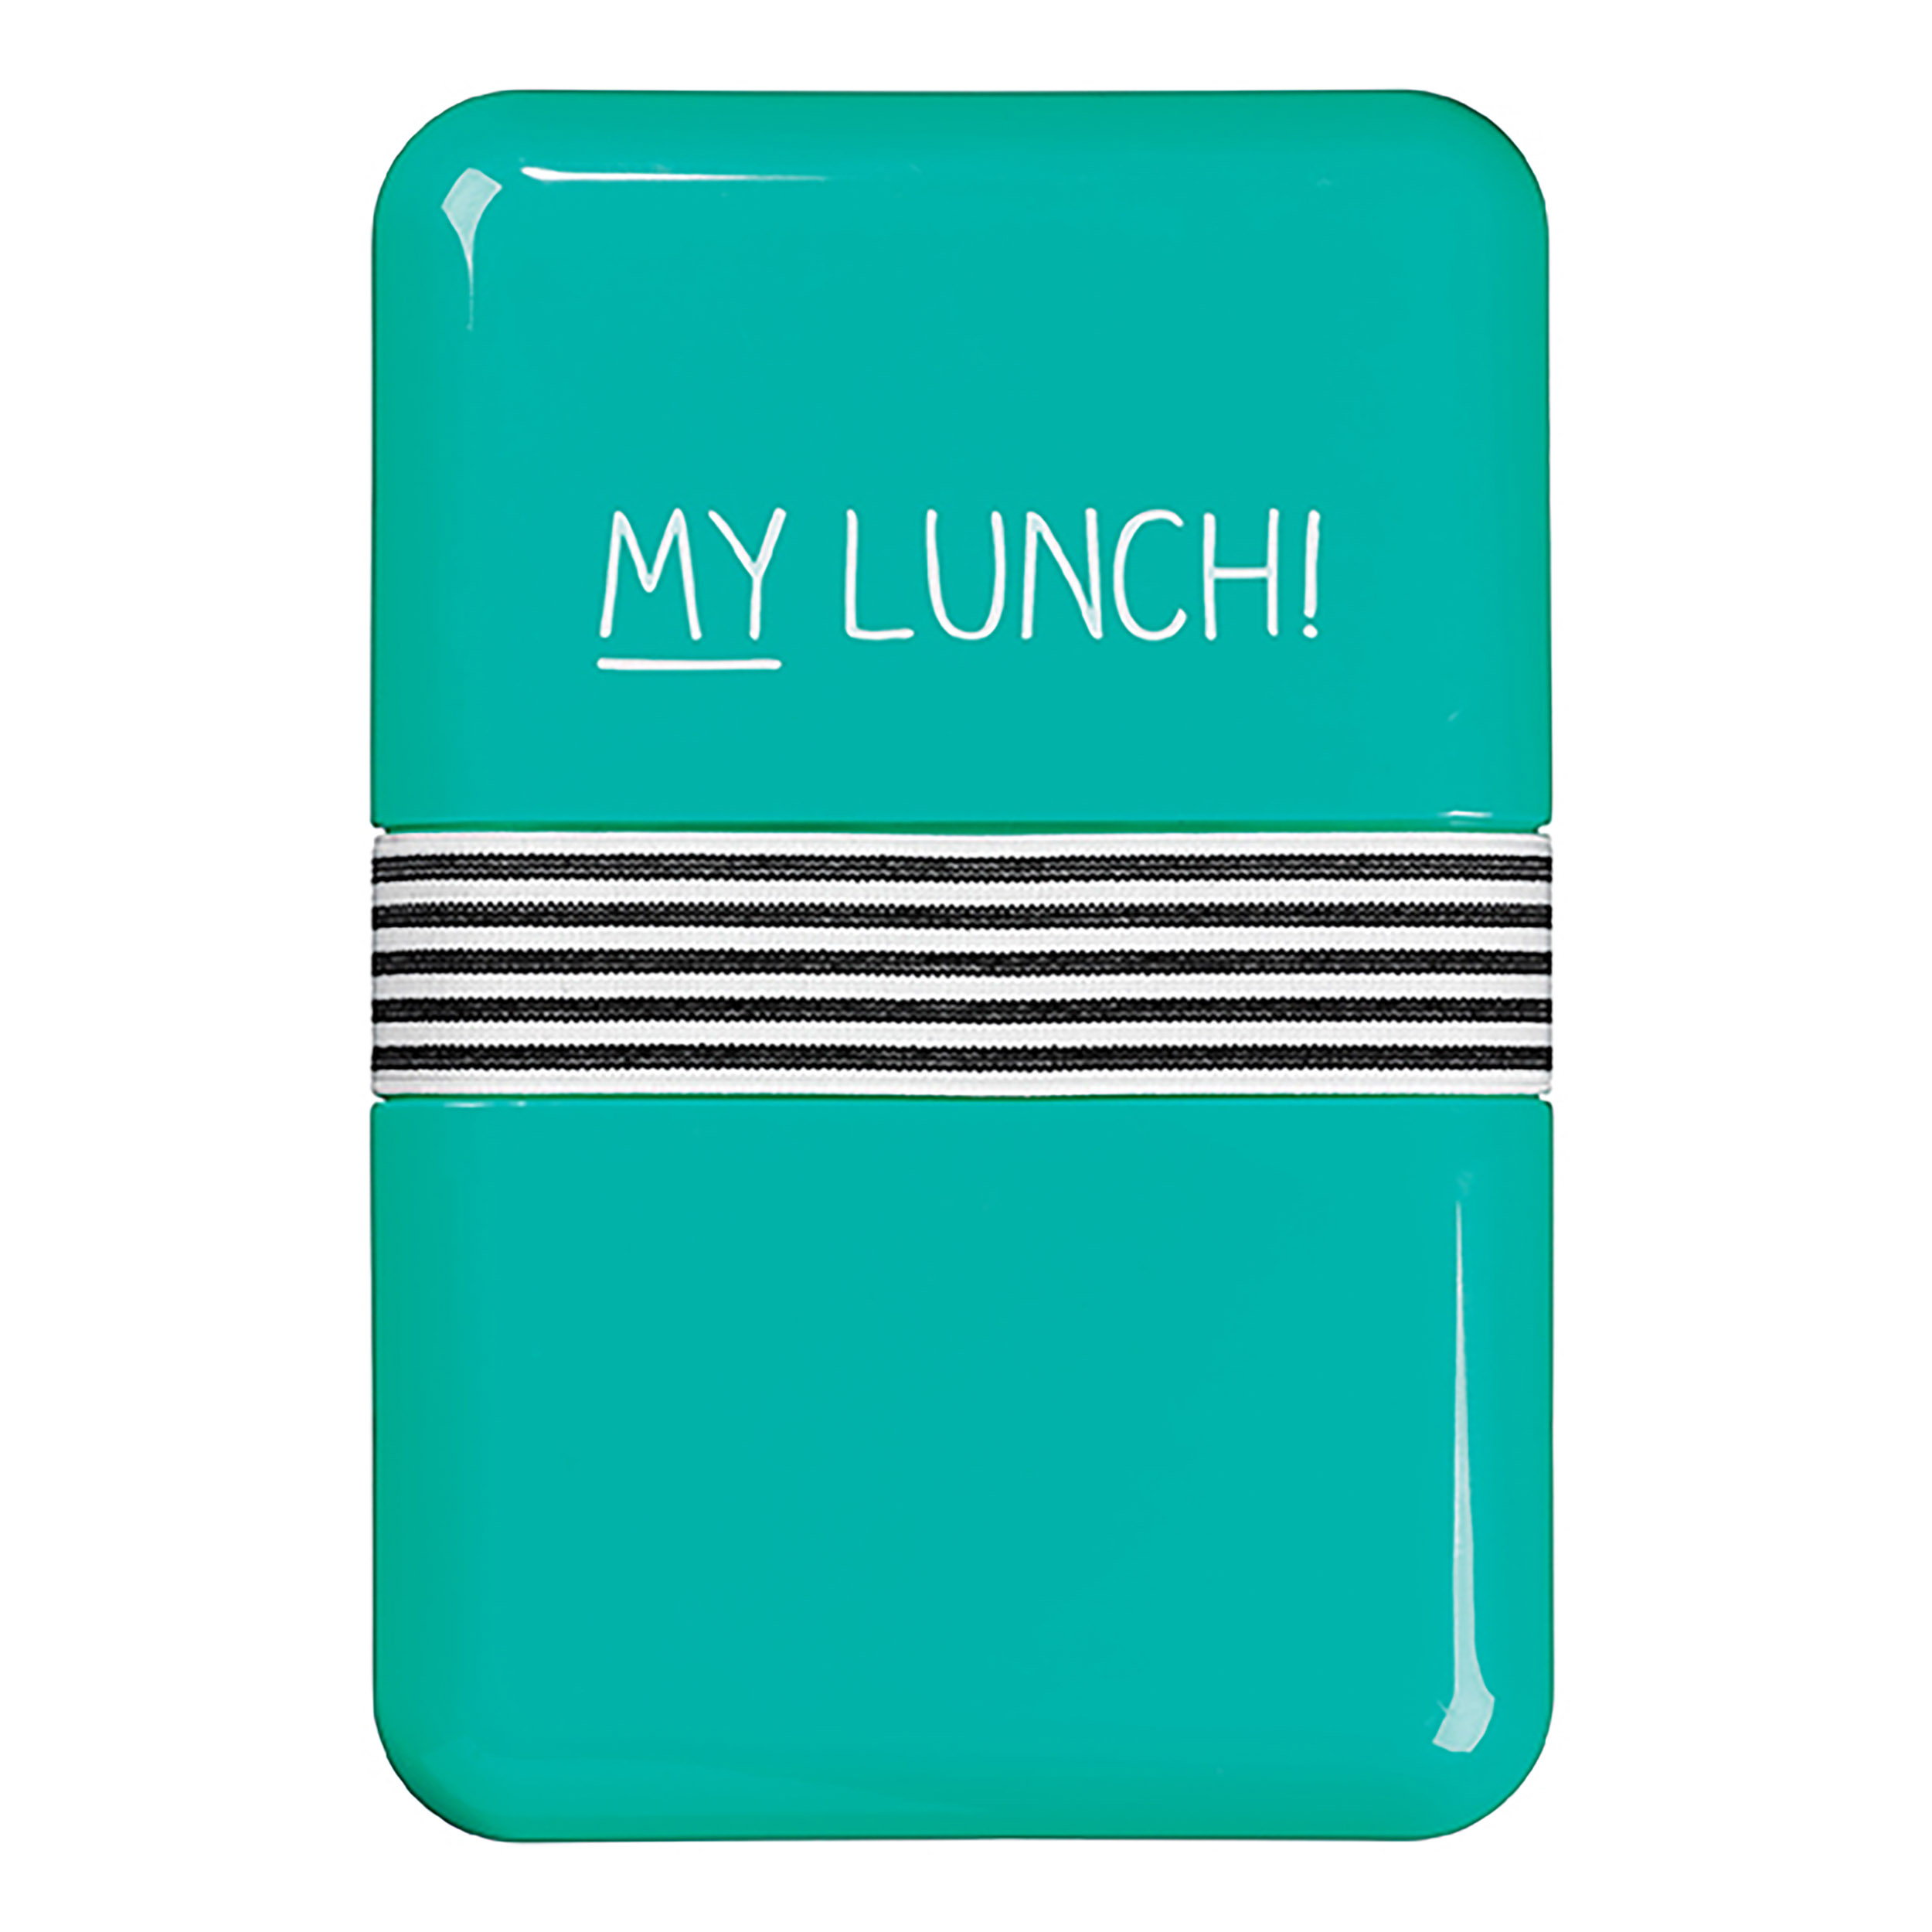 My Lunch' Lunch Box